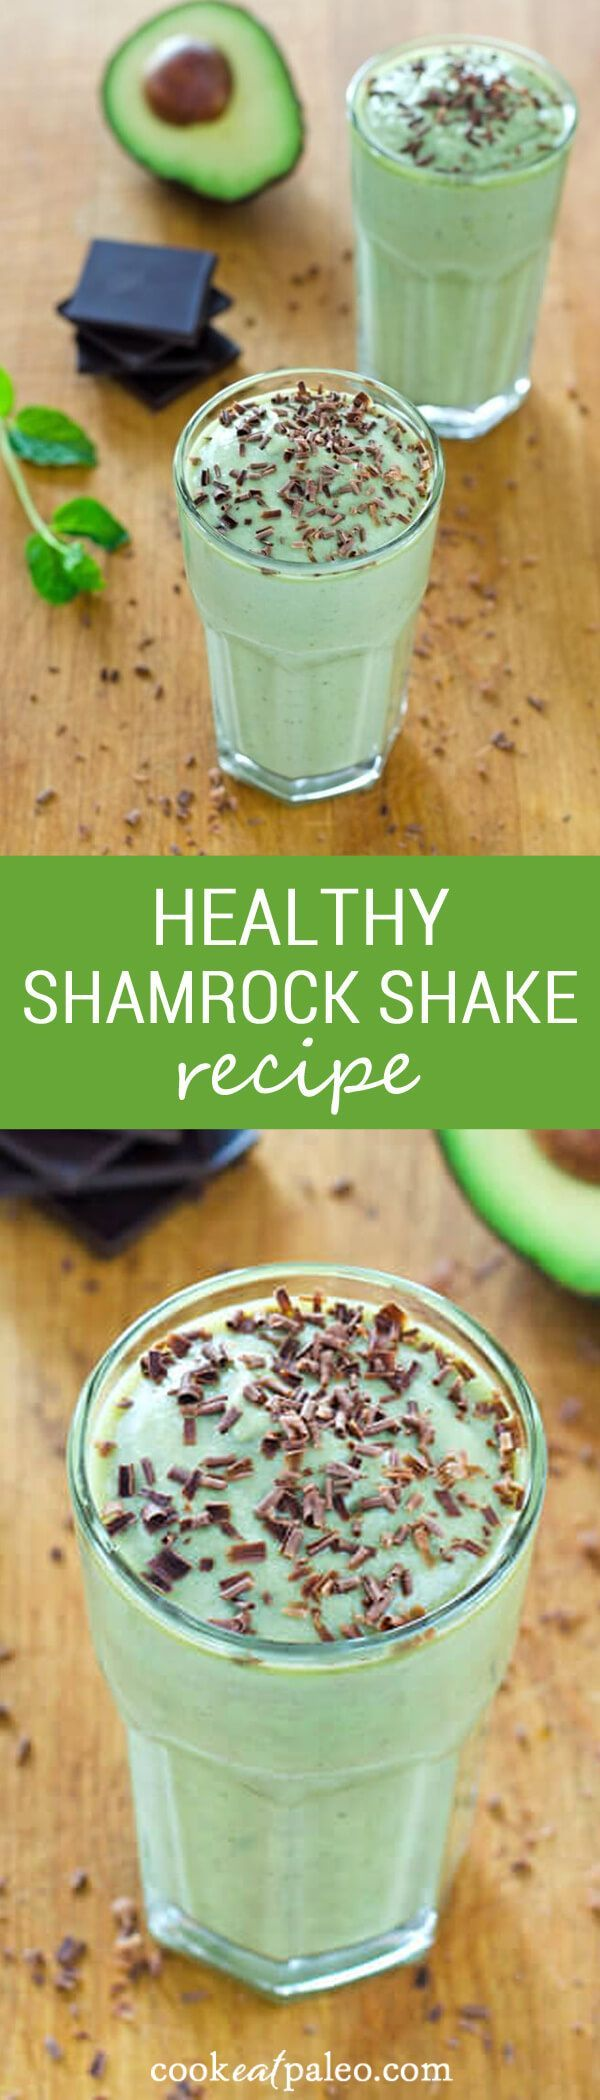 My healthy shamrock shake recipe is dairy-free, refined sugar-free, and additive-free. It's made with coconut milk, avocado, and fresh mint. ~ http://cookeatpaleo.com